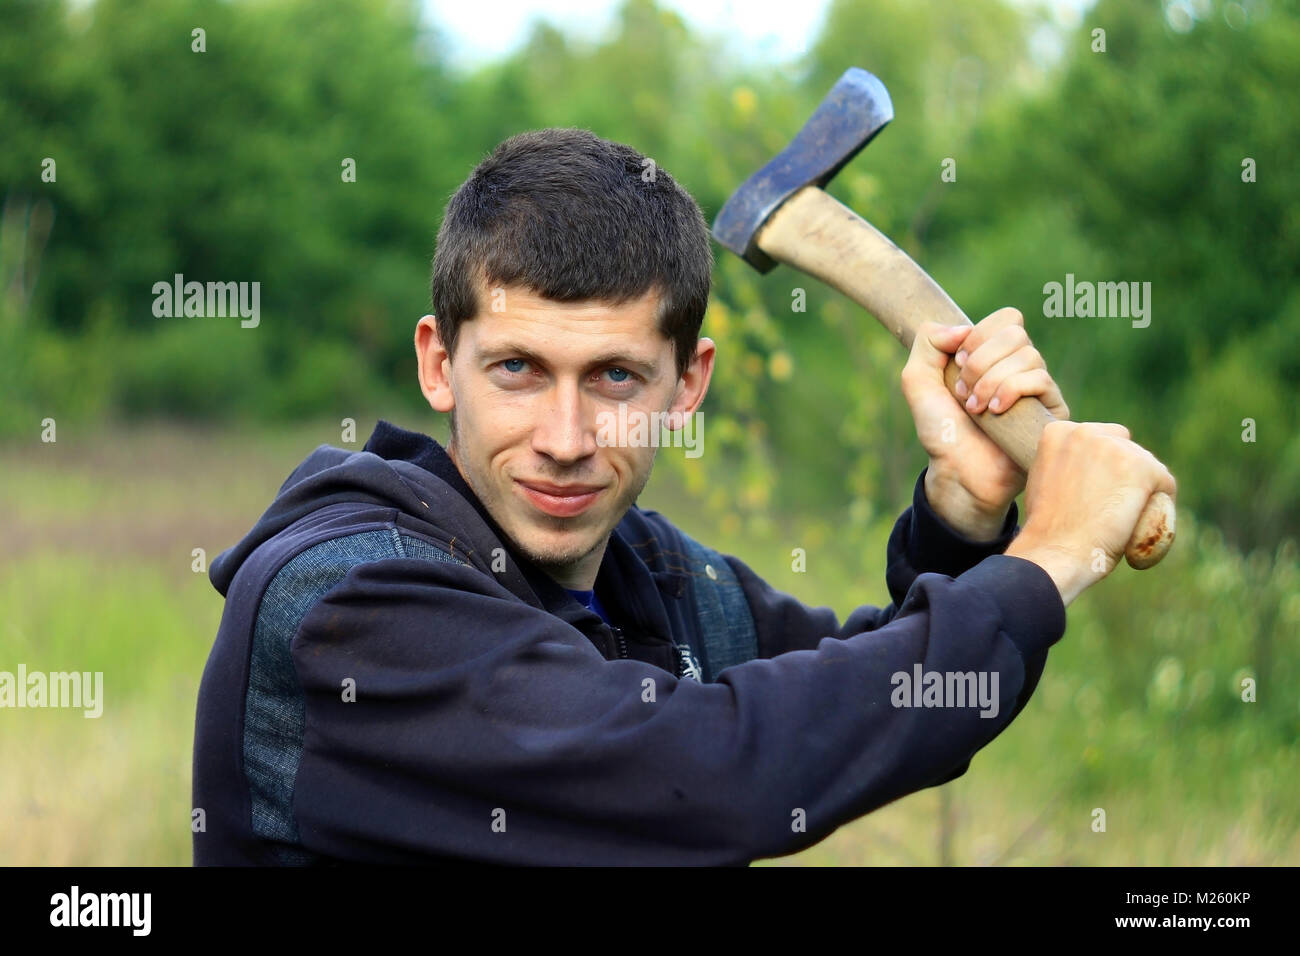 Young man with an axe chopping someone in summer forest - Stock Image